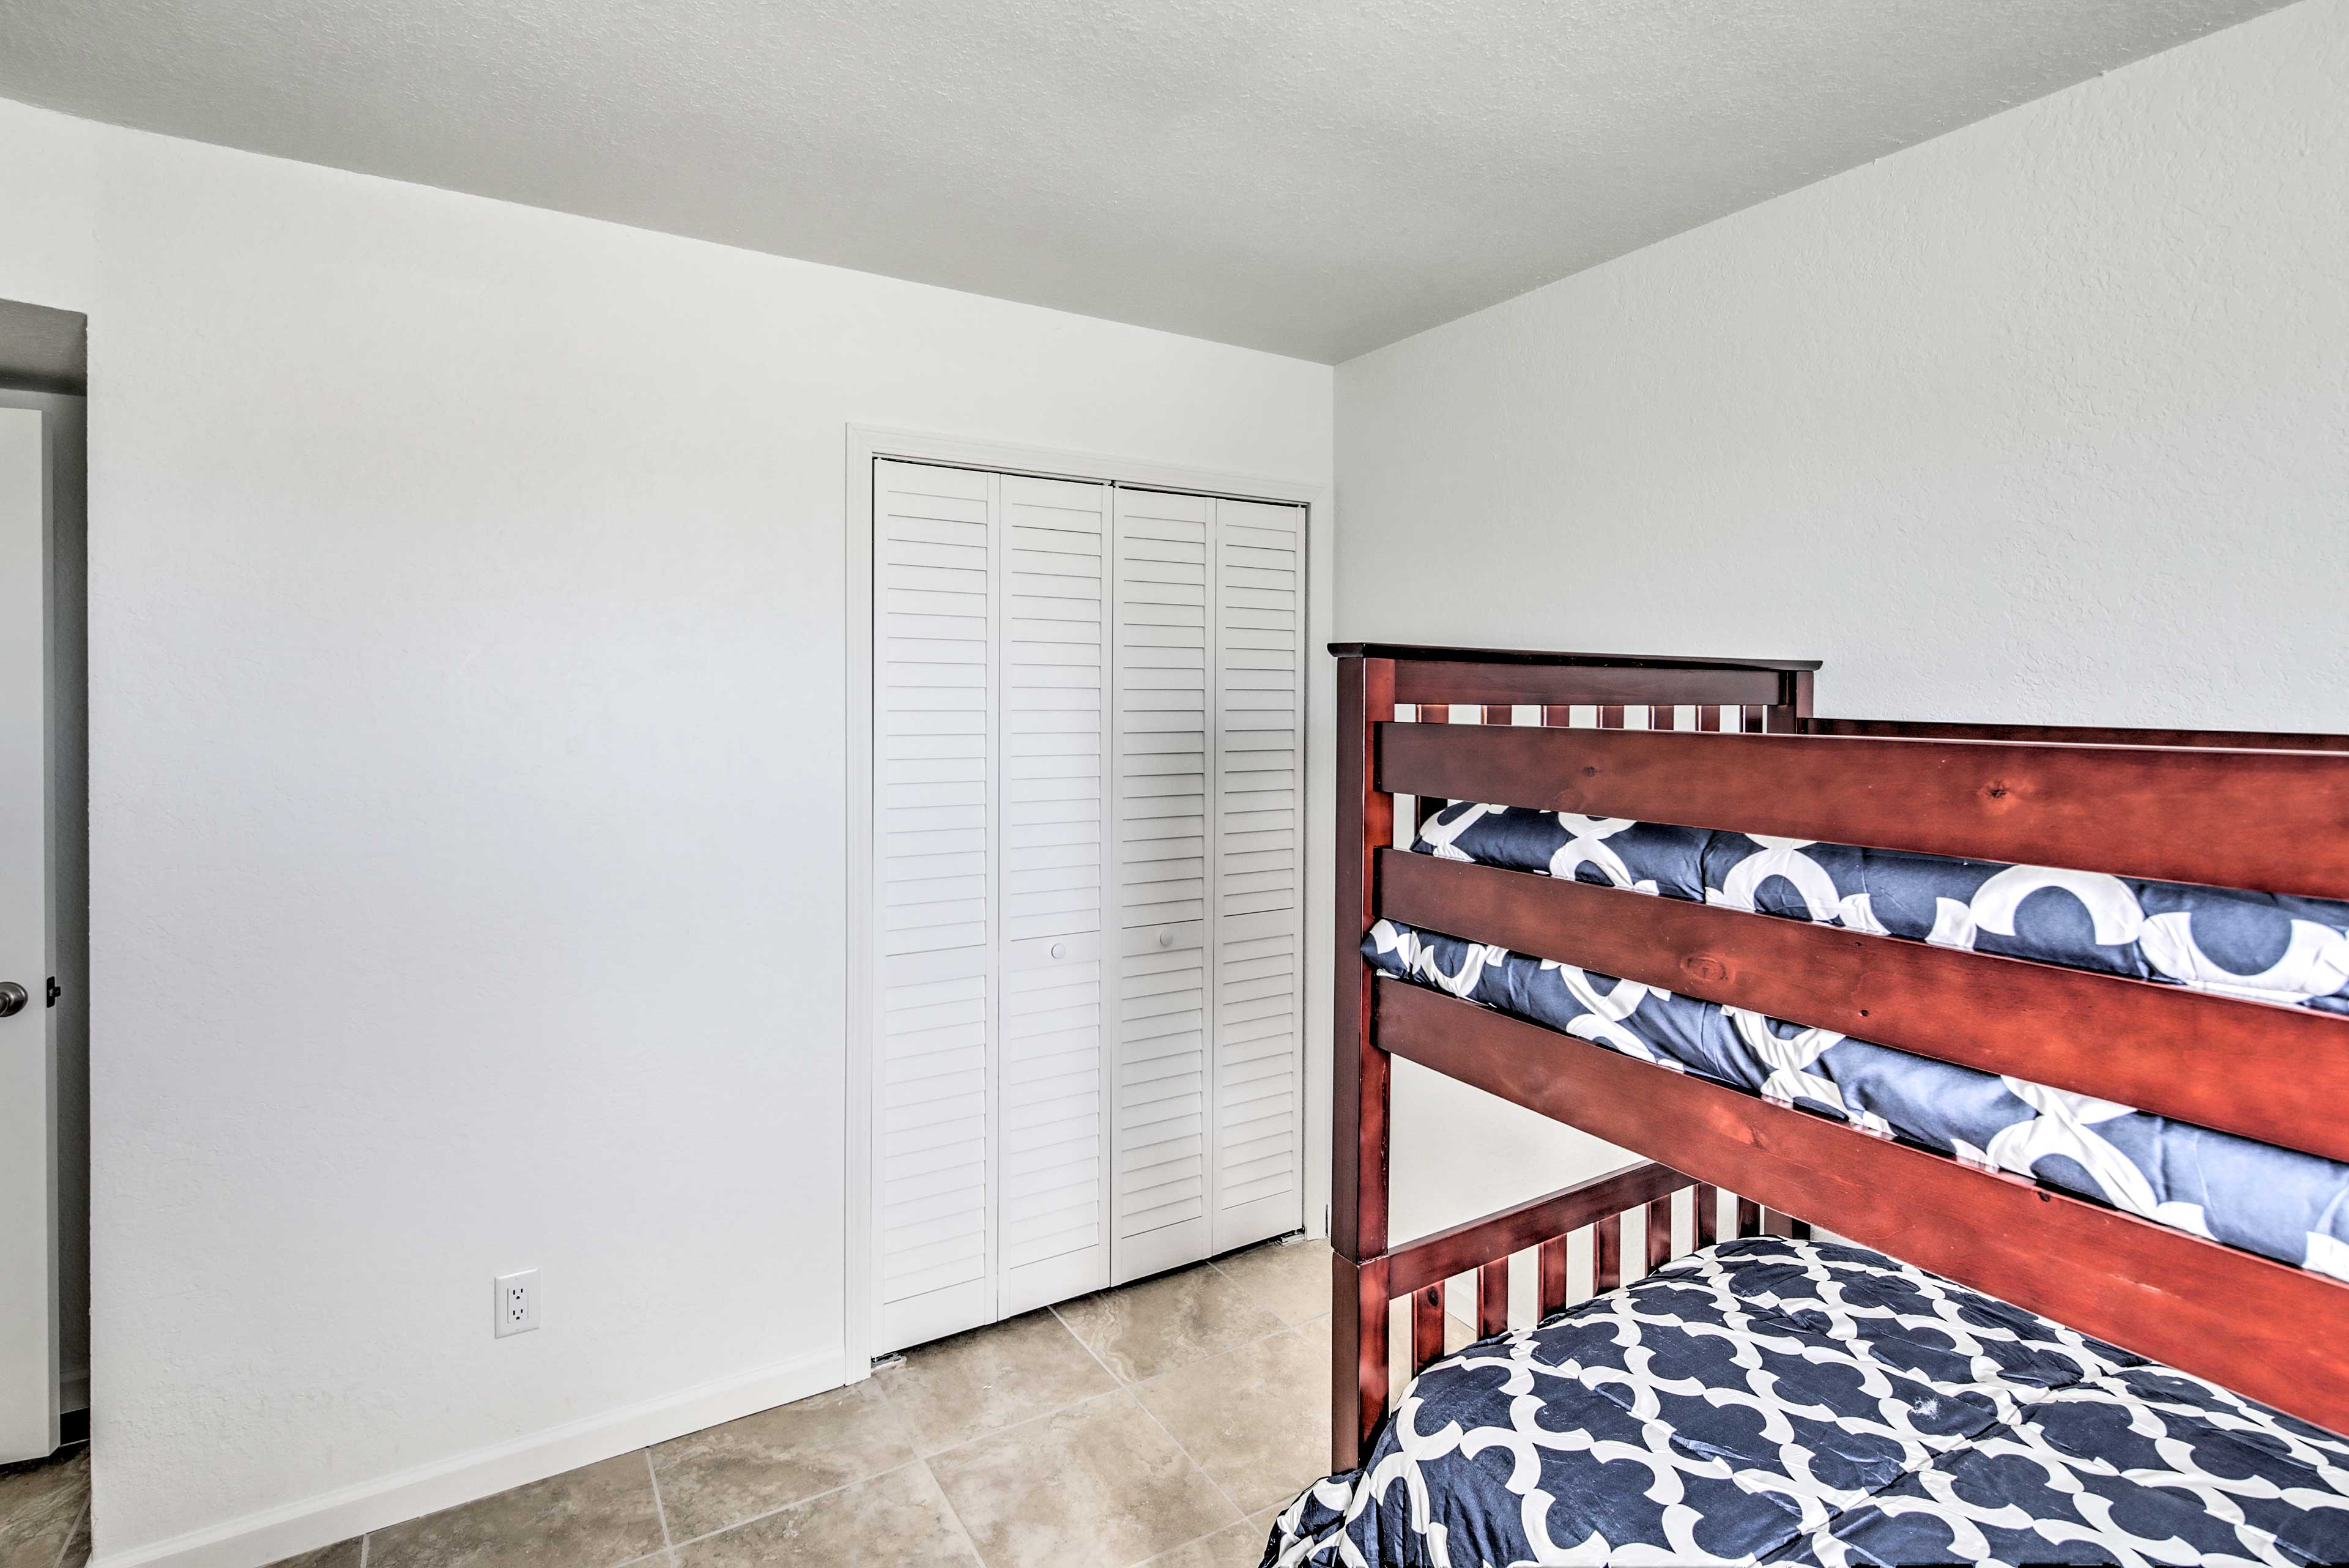 With 4 twin beds, up to 4 guests can stay in here!